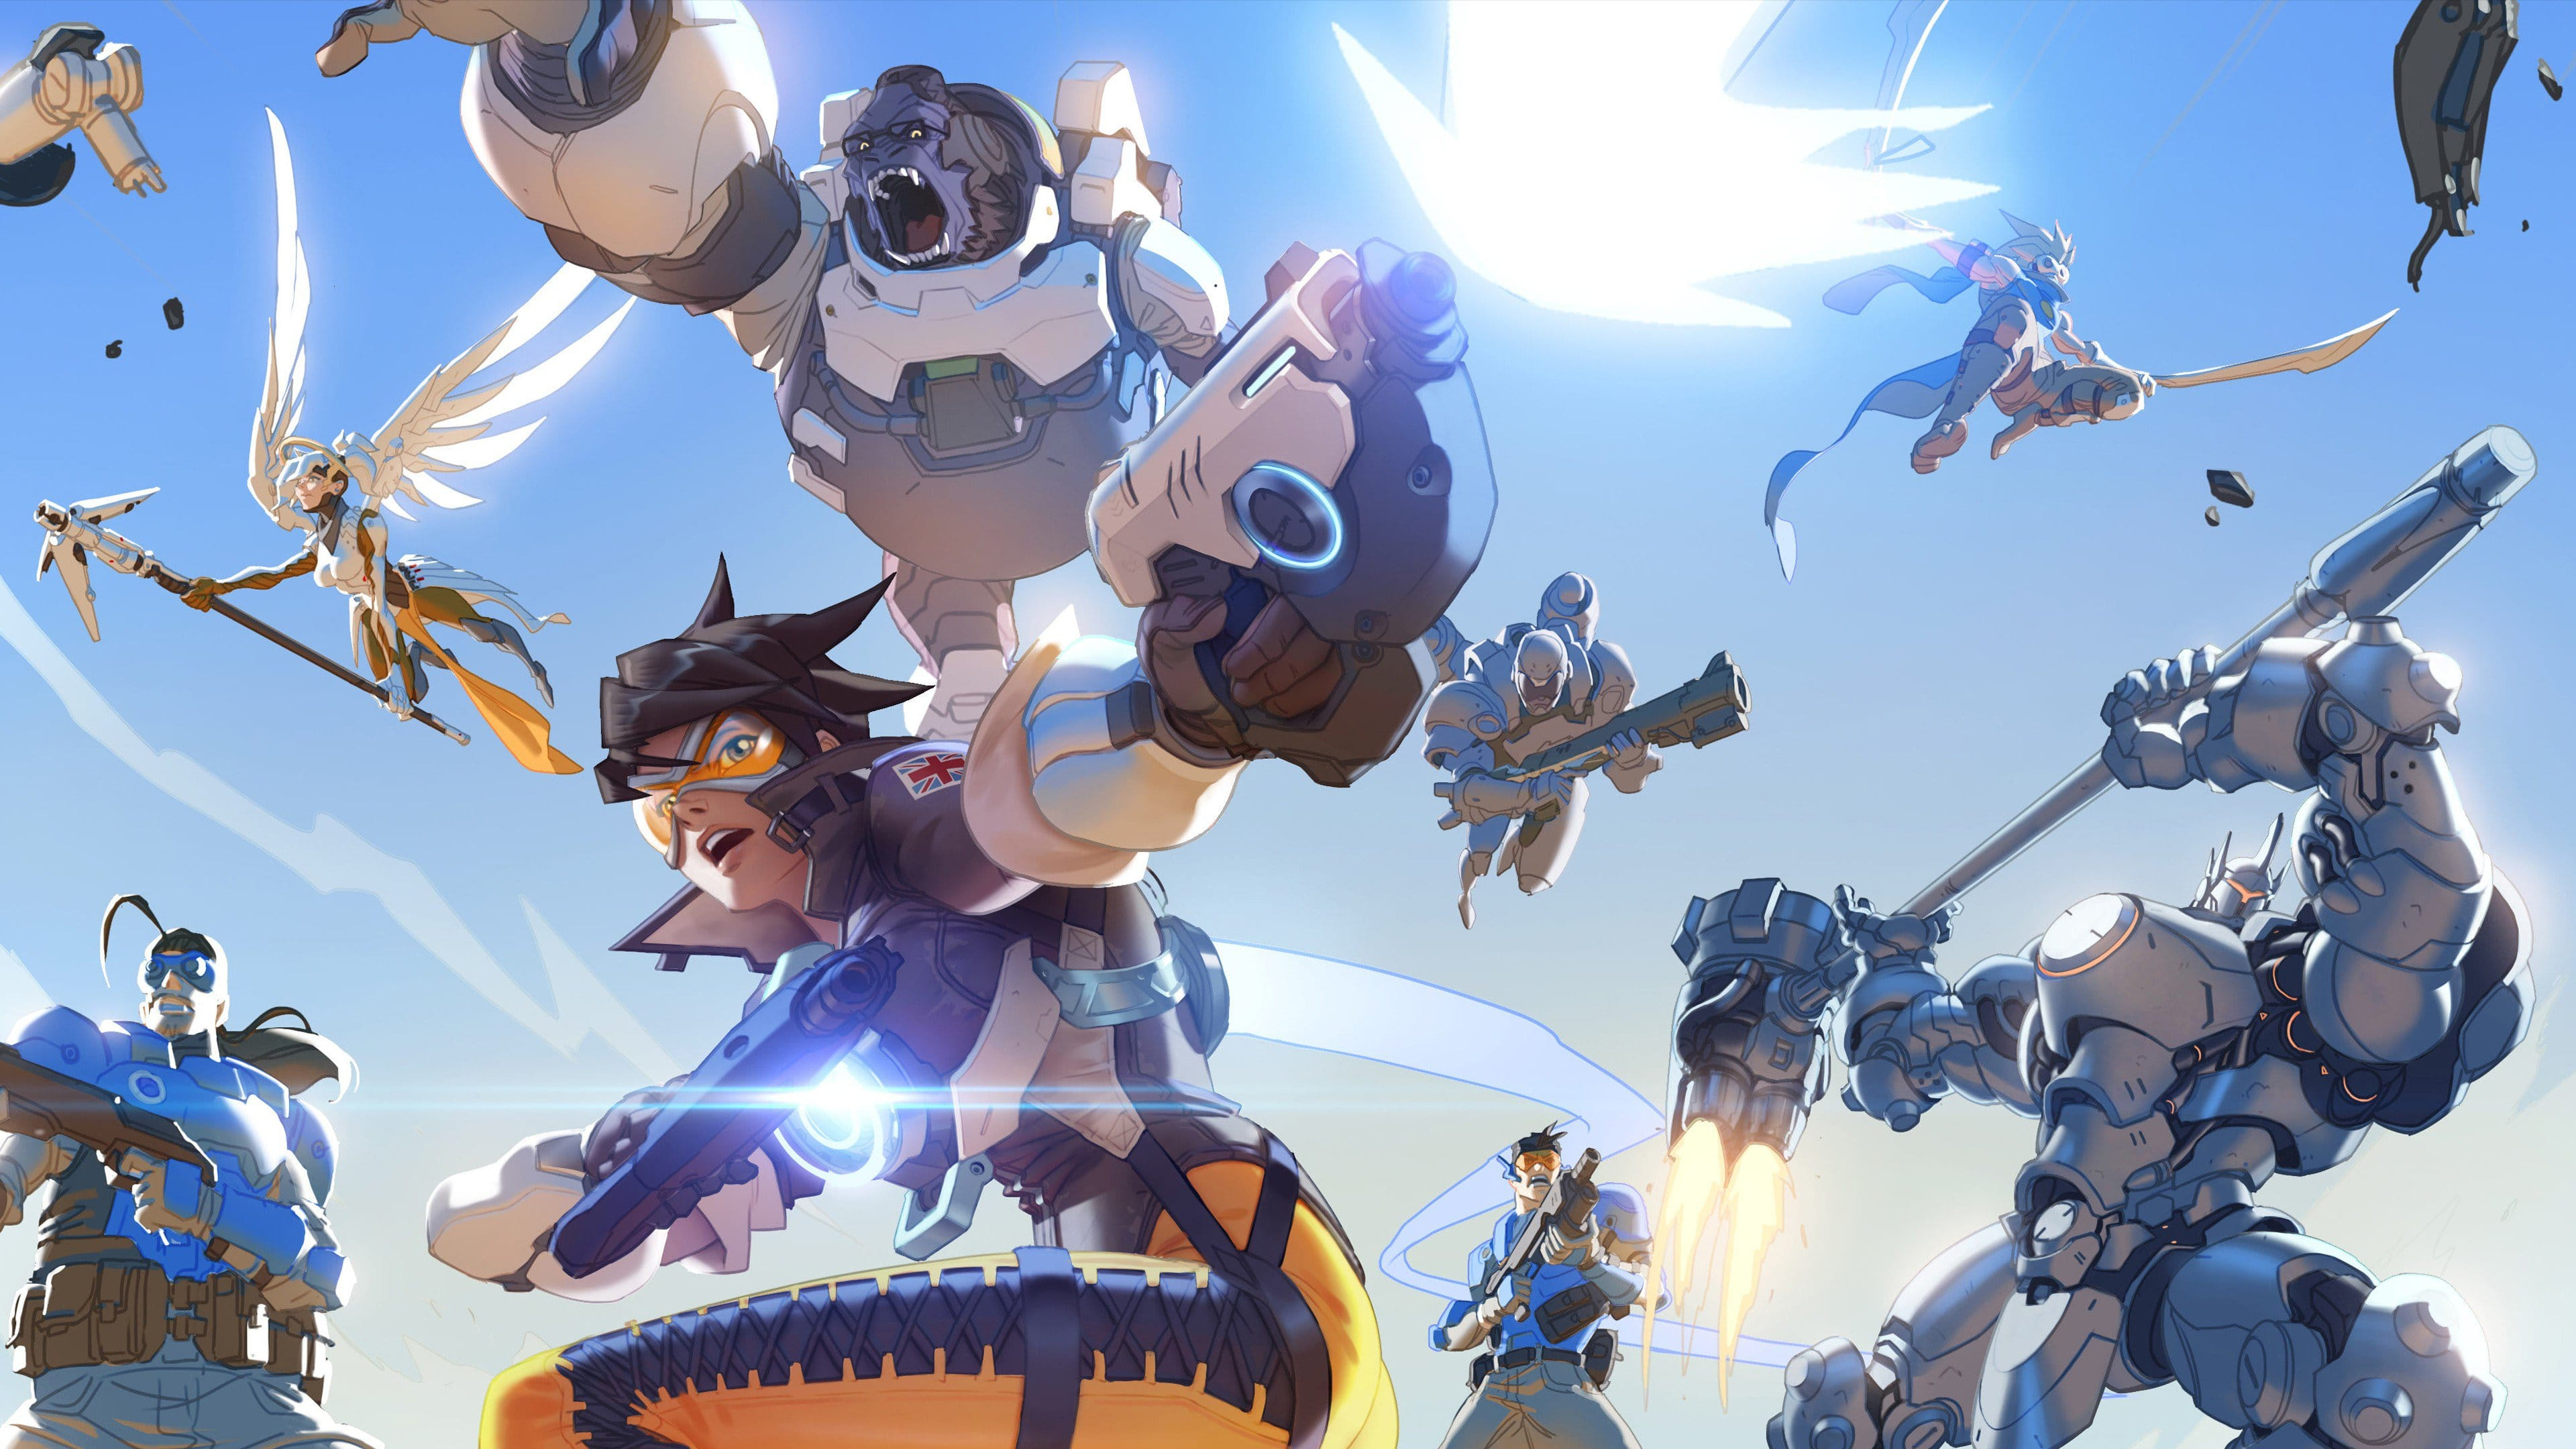 Overwatch widescreen wallpapers